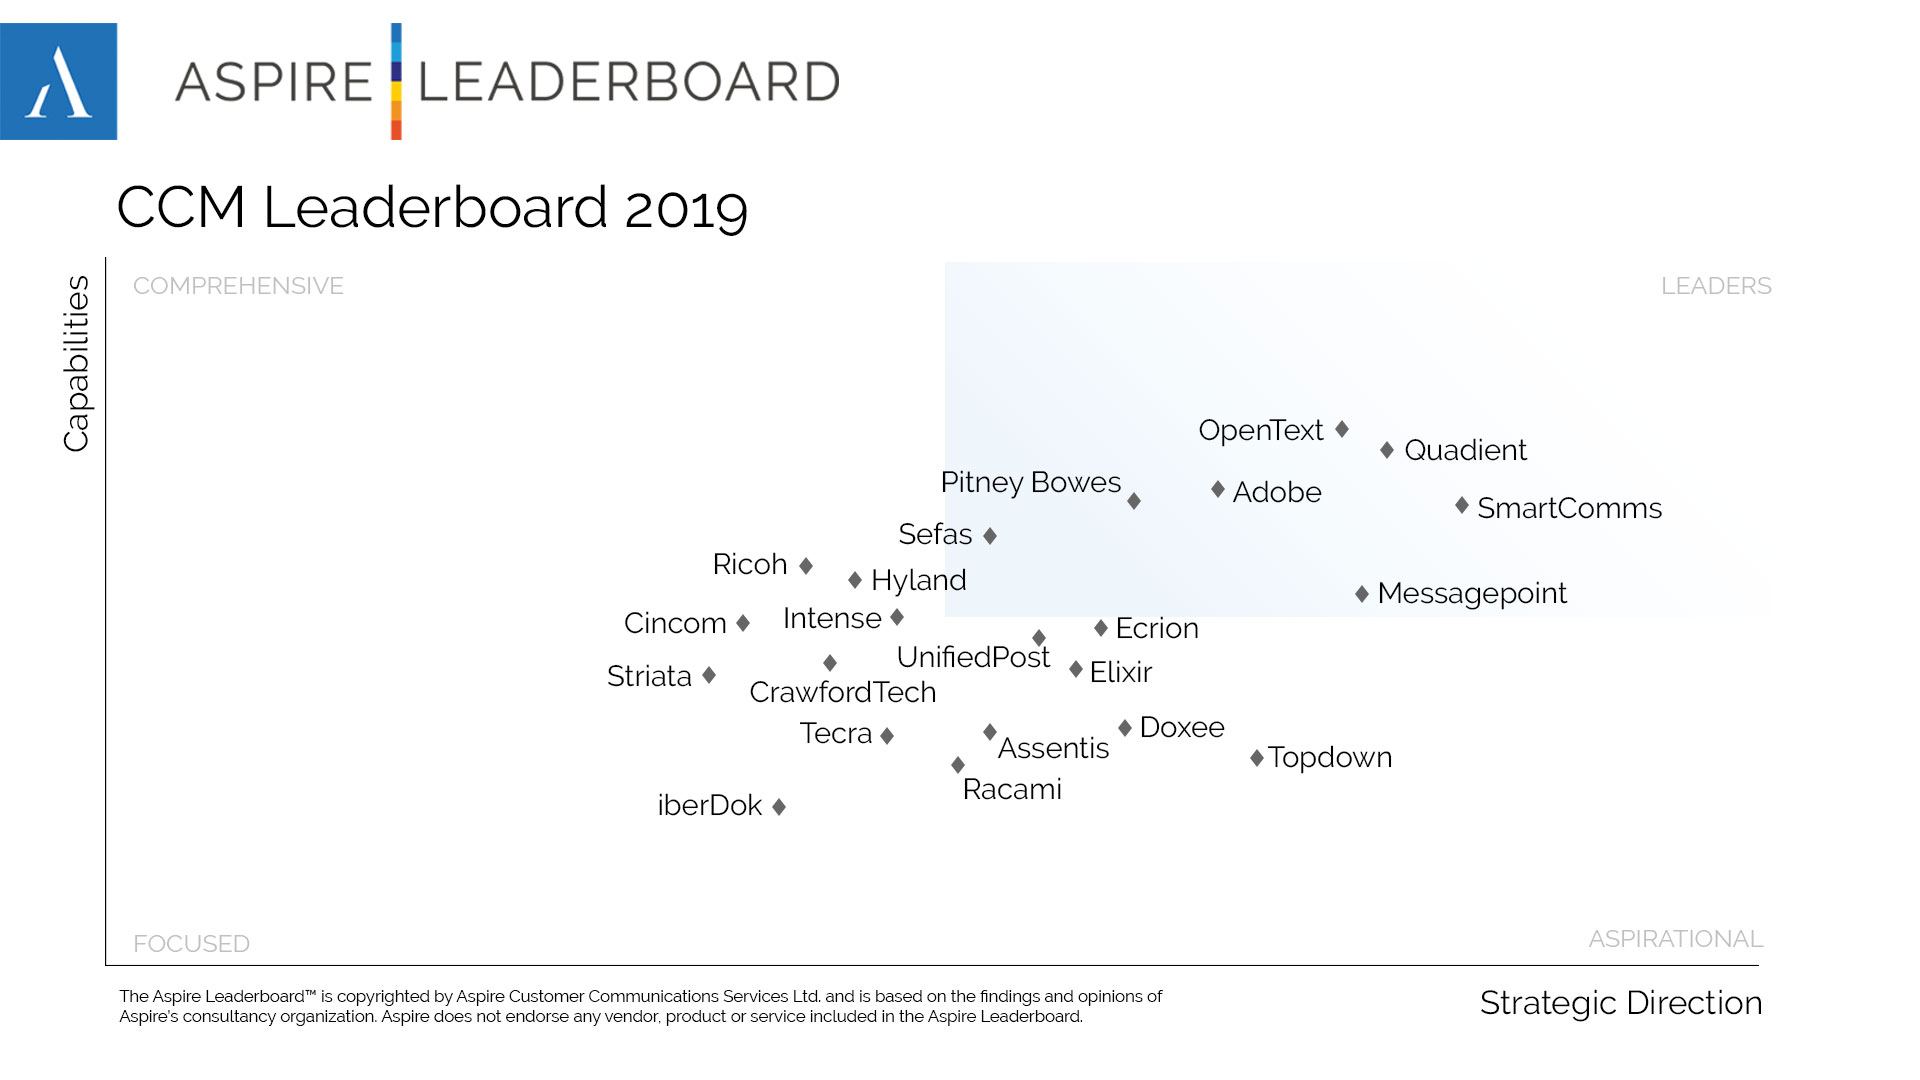 Quadient Recognized as an Overall Leader in the 2019 Aspire Leaderboard for CCM for the Second Consecutive Year